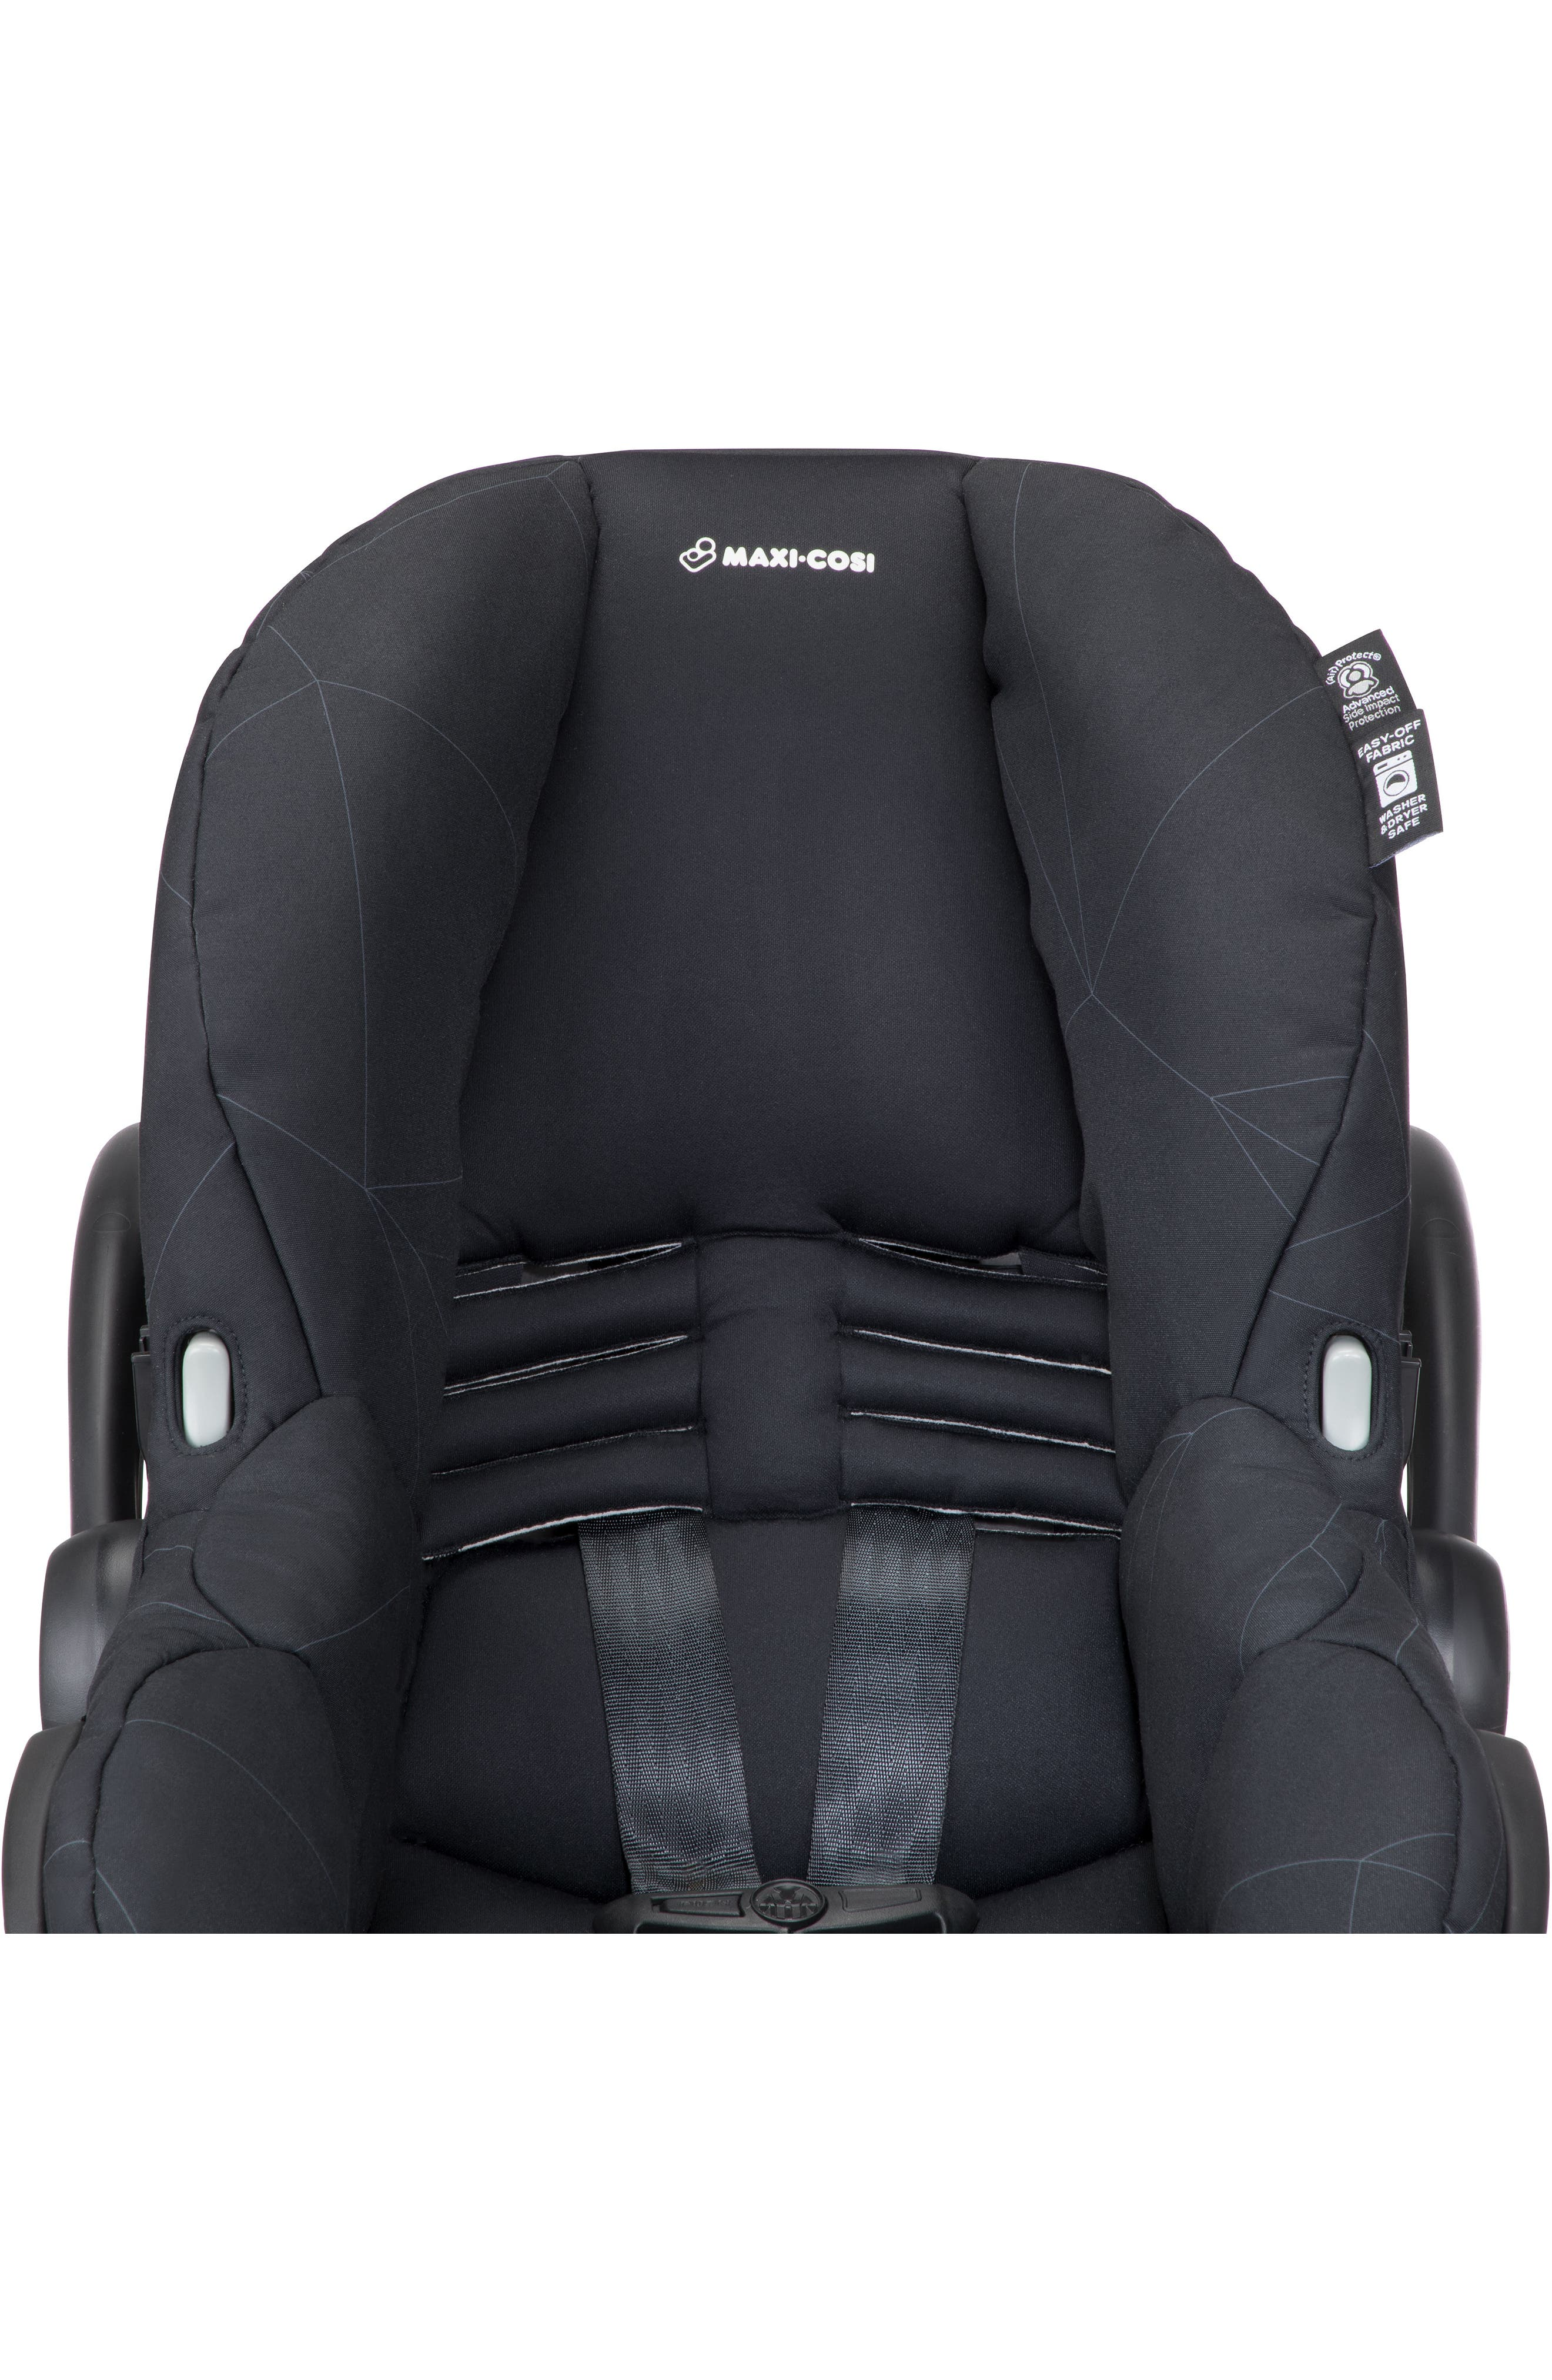 Pria<sup>™</sup> 85 Max Convertible Car Seat,                             Alternate thumbnail 6, color,                             DIAMOND LINES